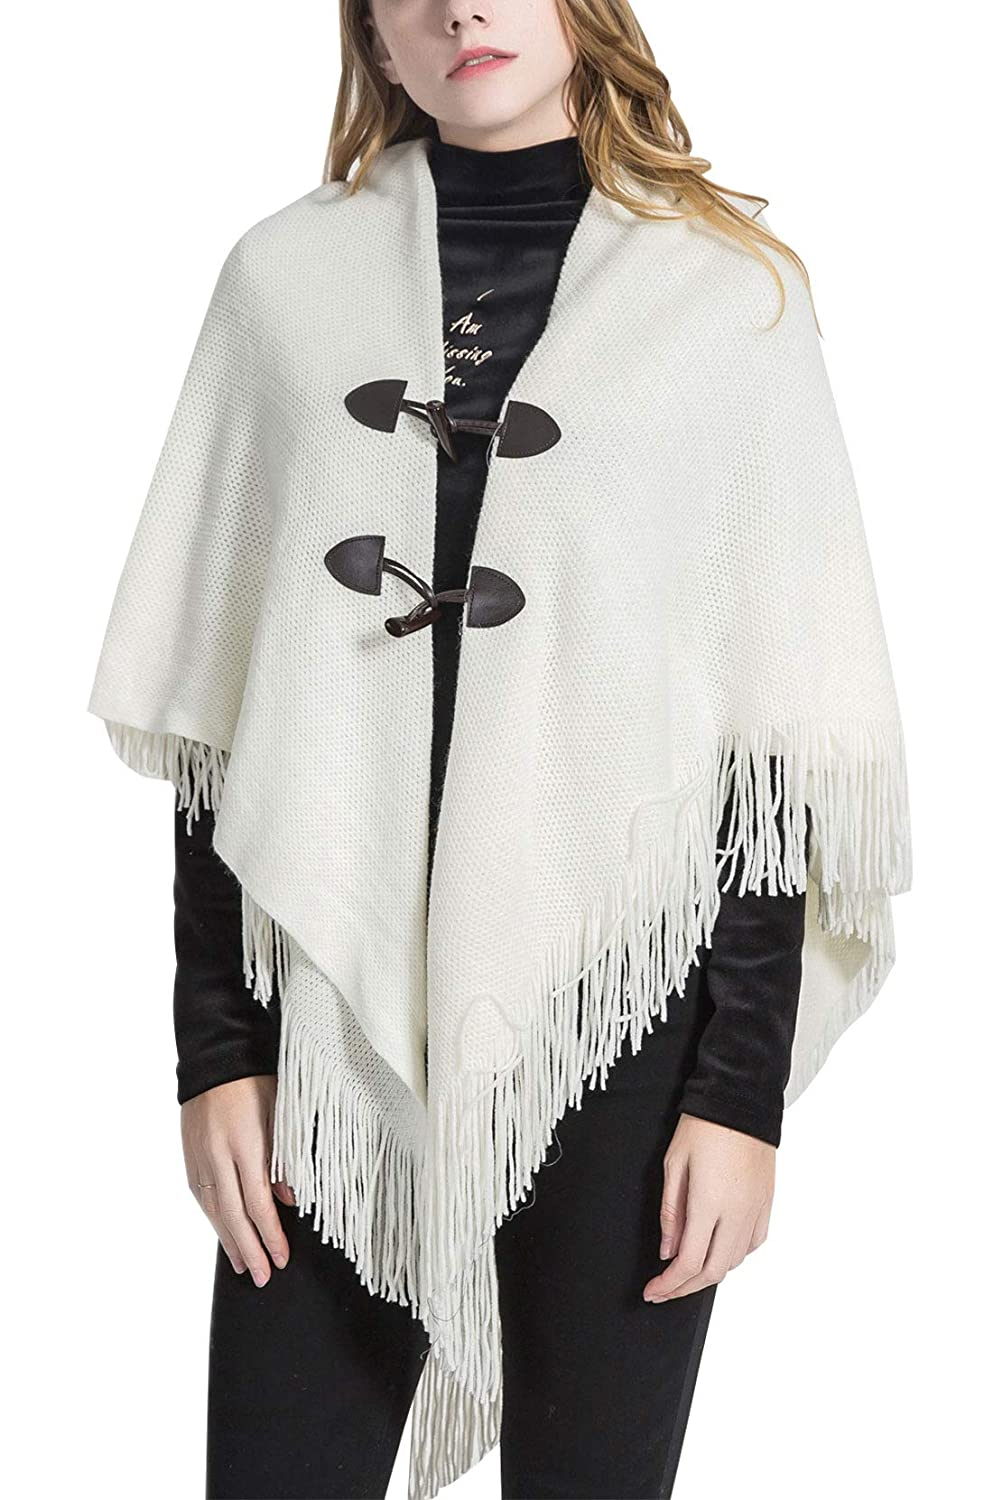 Women's Fashion Solid Color Shawl Wrap Horn Buckle Open Front Poncho Cape -White FEOYA